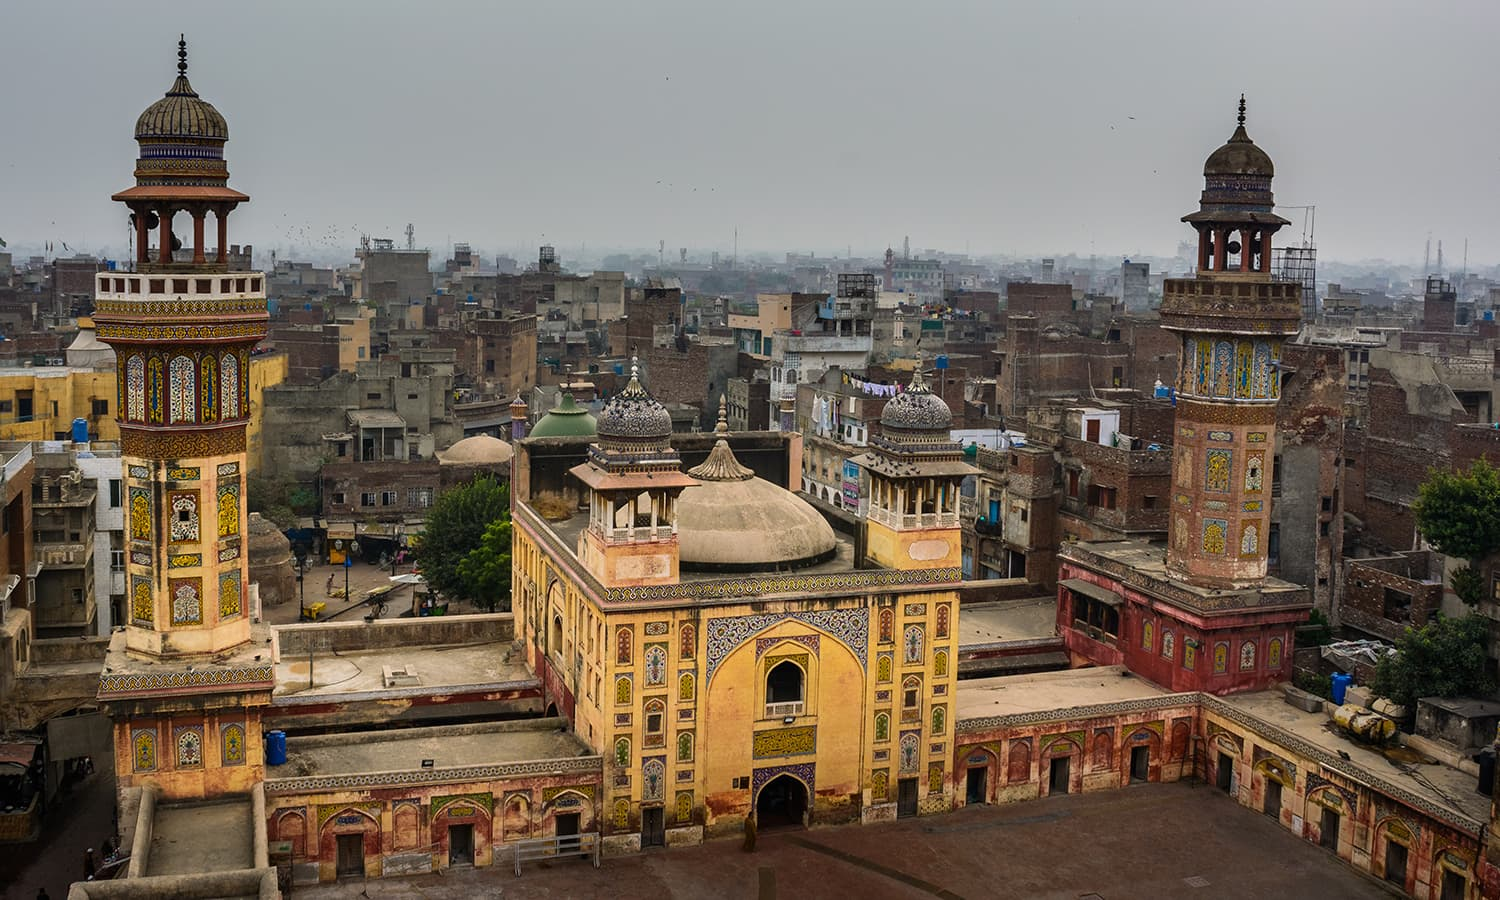 The Wazir Khan Mosque, built during Shahjahan's time, is a riot of colours. Photo: Shahbaz Aslam/ Wikimedia Commons.